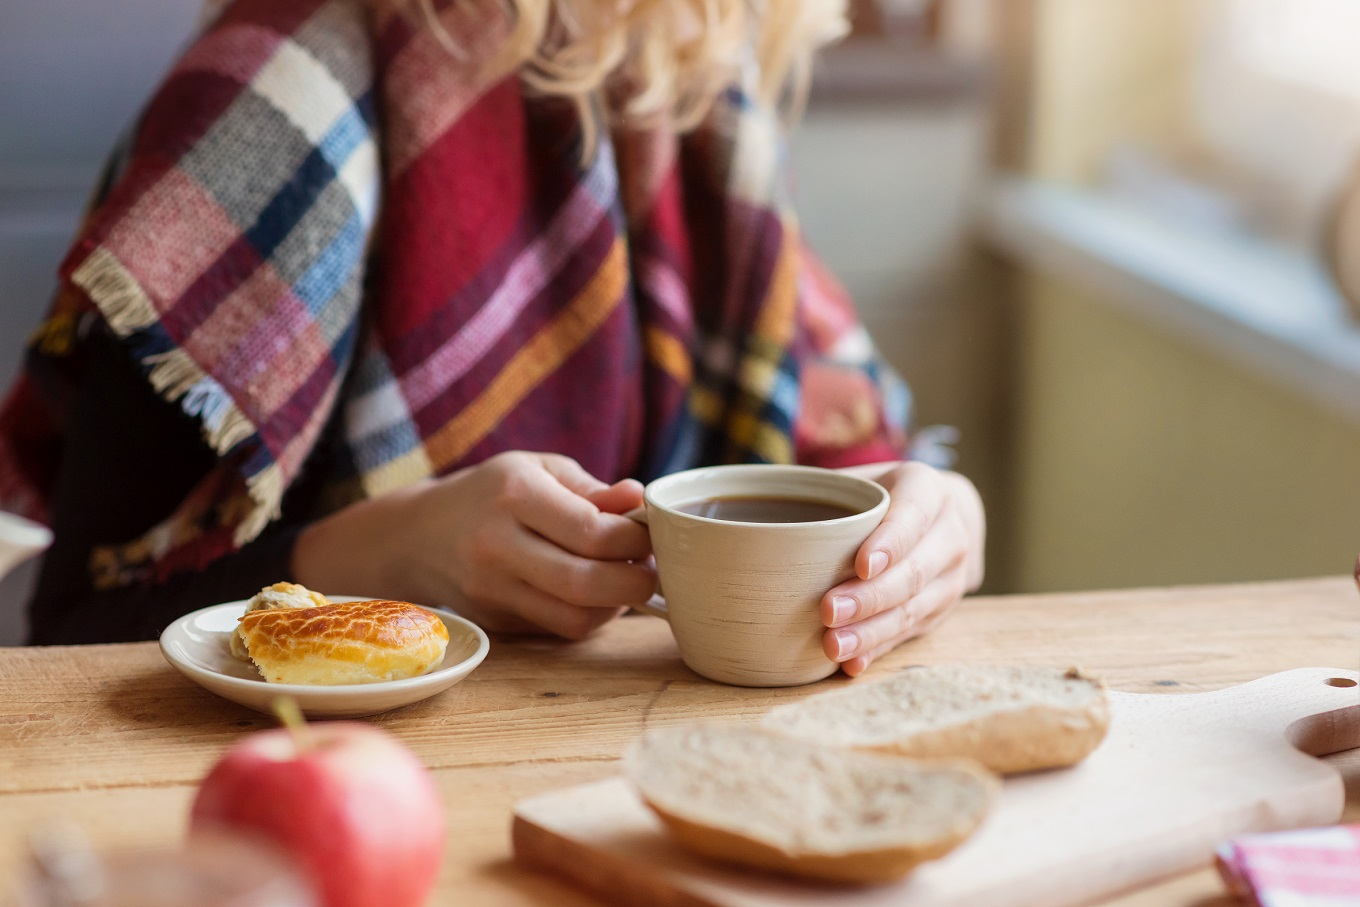 drinking coffee at home - gifts that save money